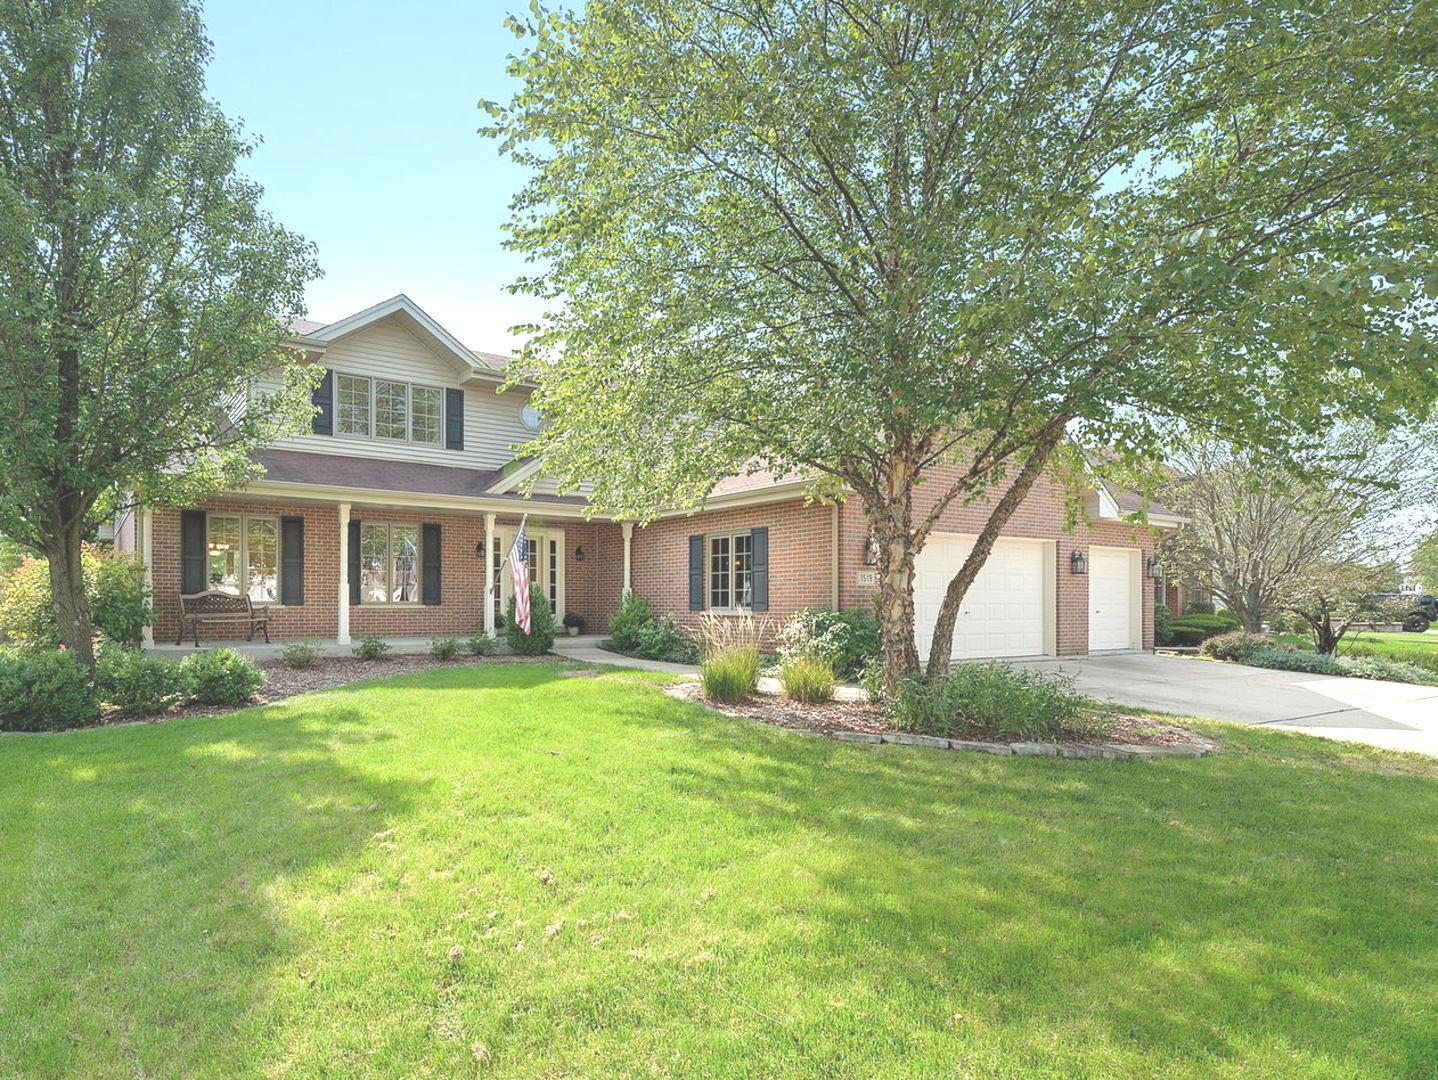 1519 Chauser Lane, Woodridge, IL 60517 - #: 10862196